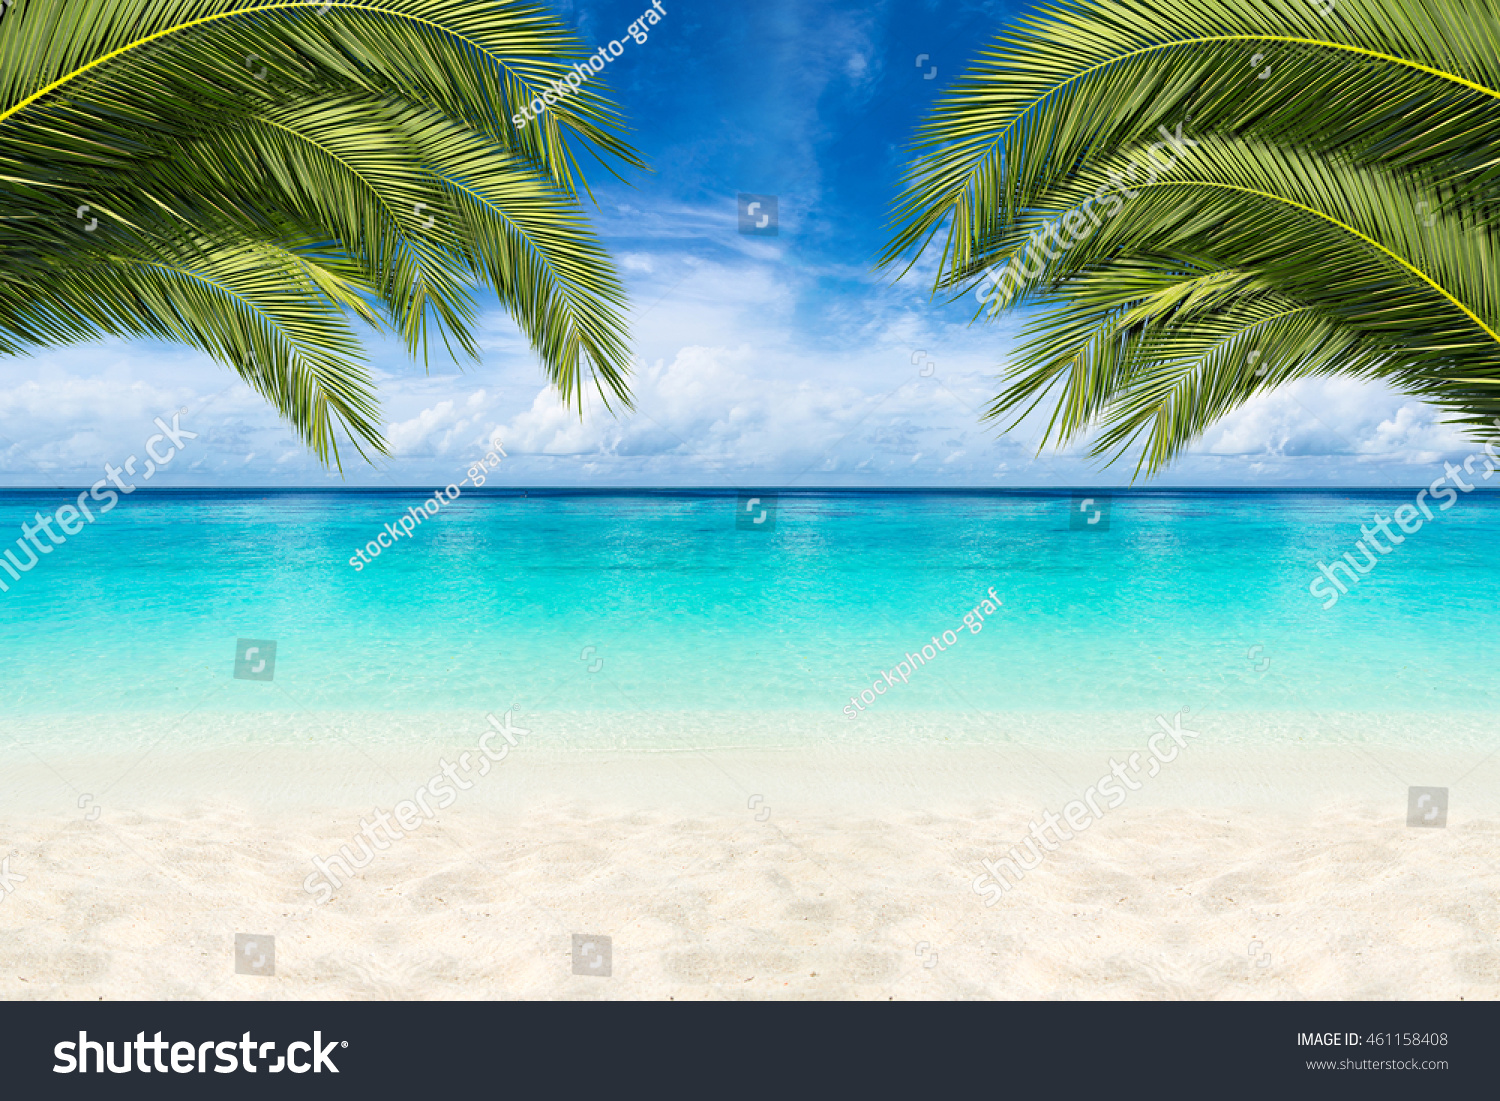 paradise beach background with coco palms